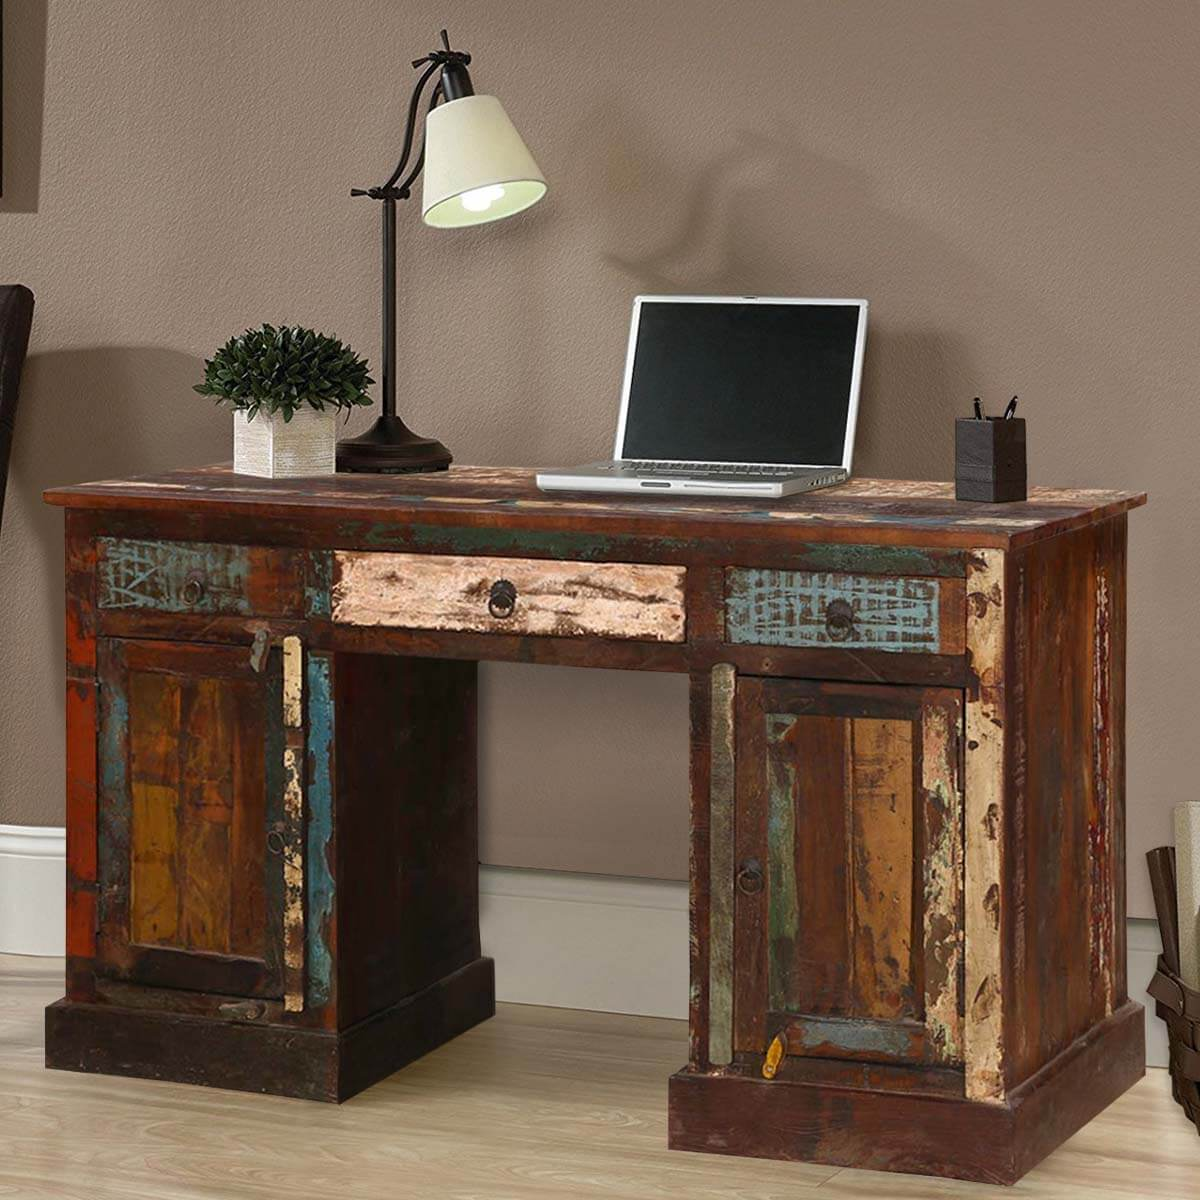 Wooden Cabinets Vintage Office Desk With Drawers